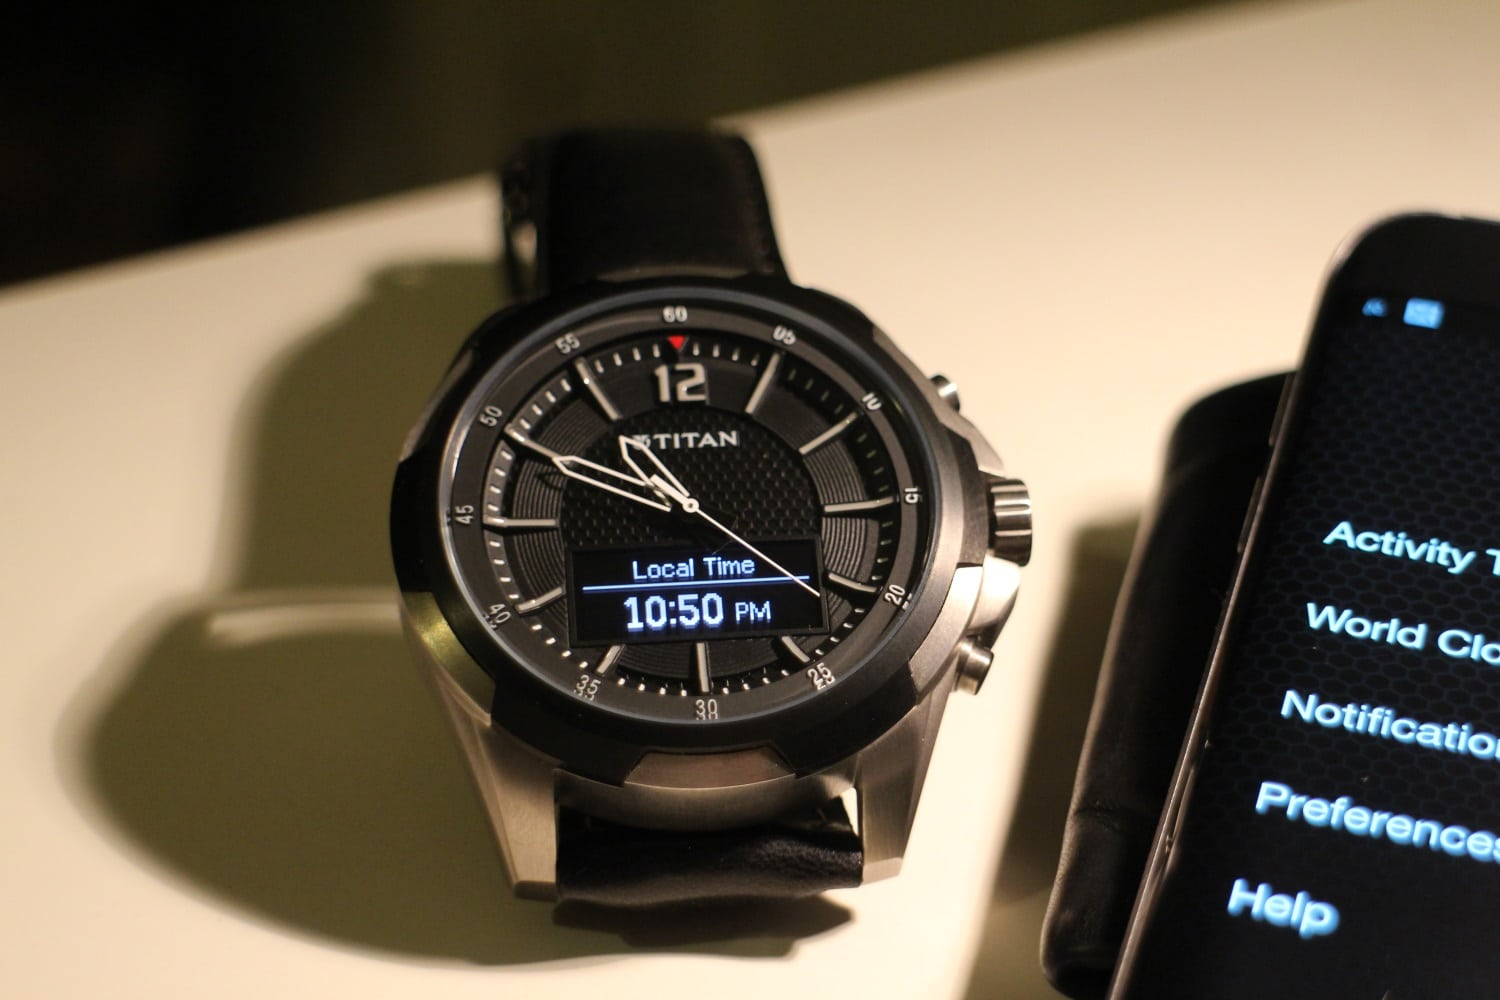 titan juxt watch local time set